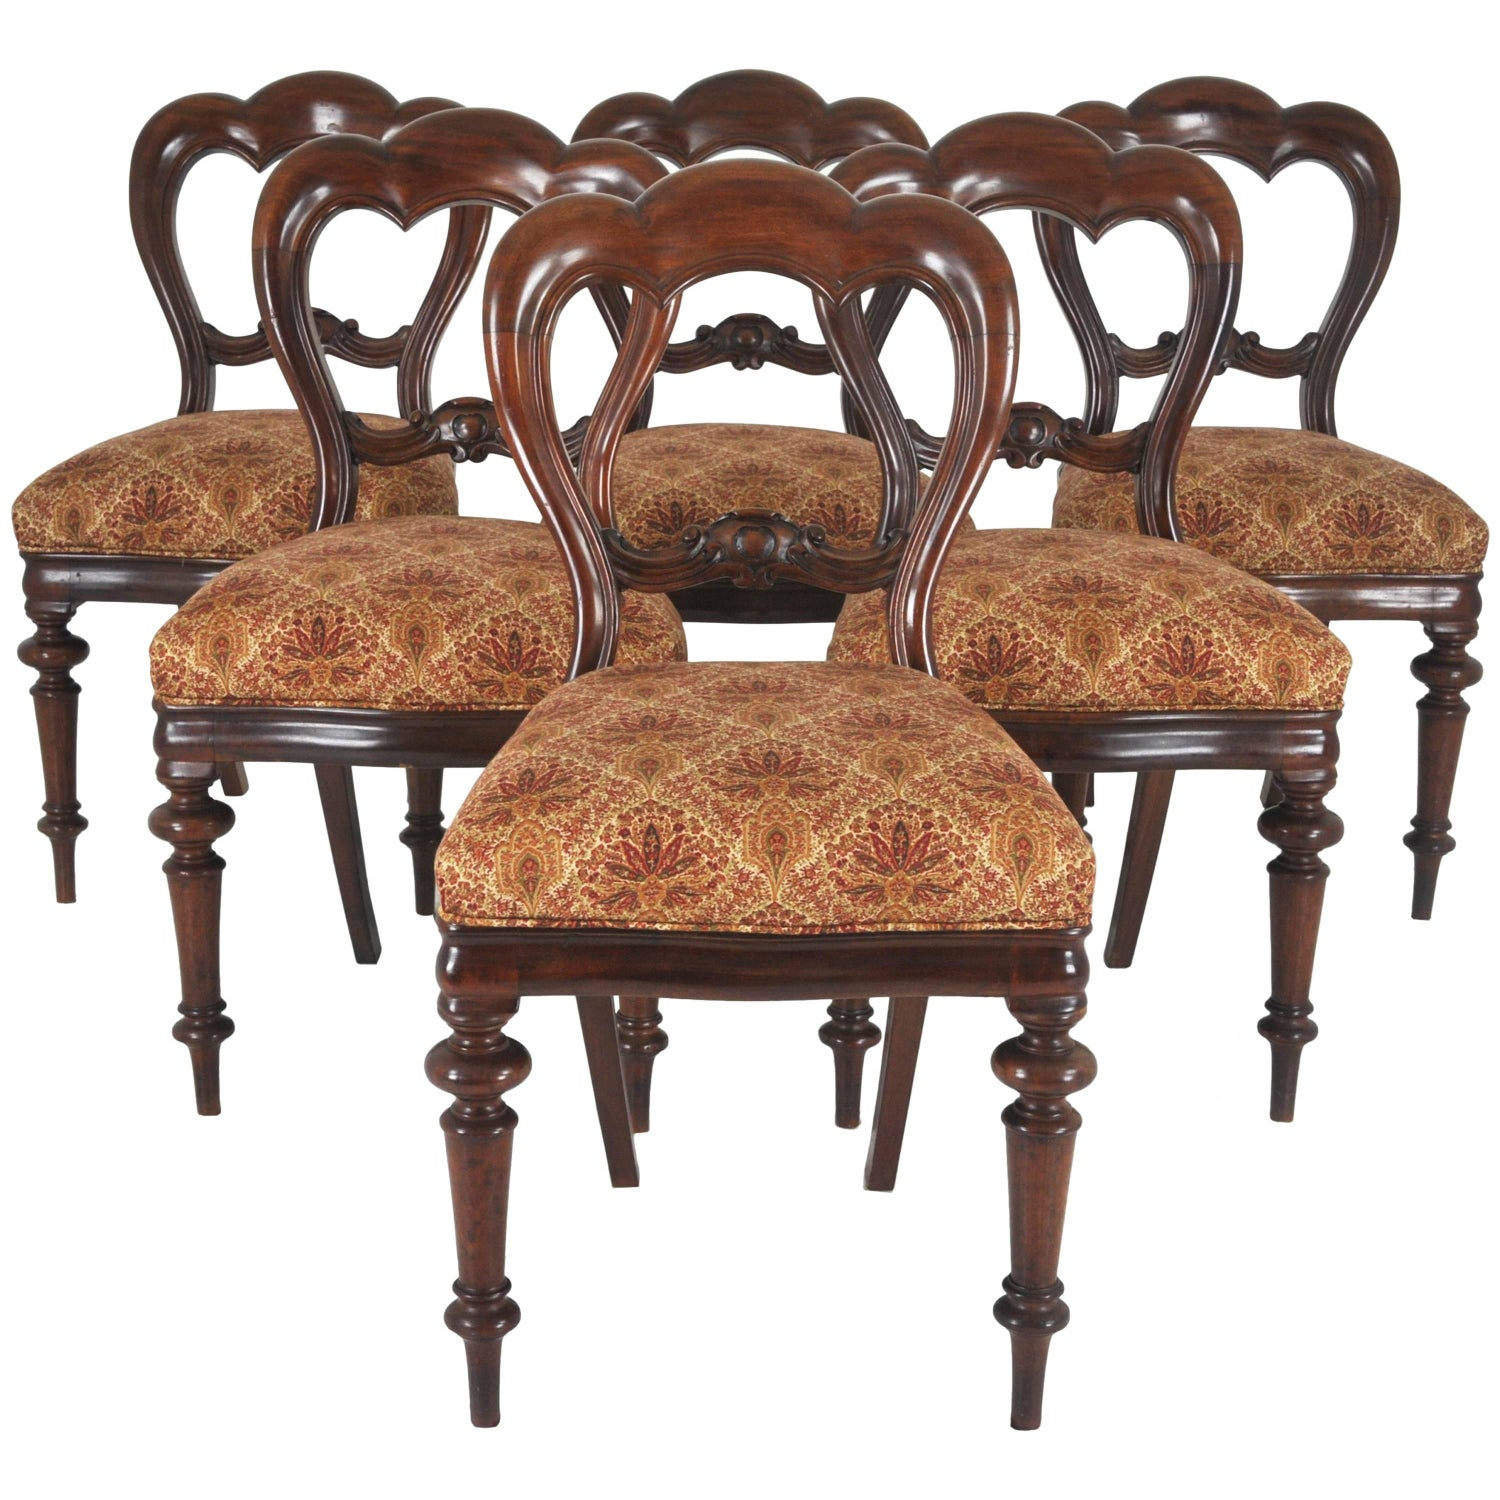 Balloon Back Dining Chairs Victorian Antique Walnut, Set of Six REDUCED! - Victorian Dining Room Chairs - 79 For Sale At 1stdibs